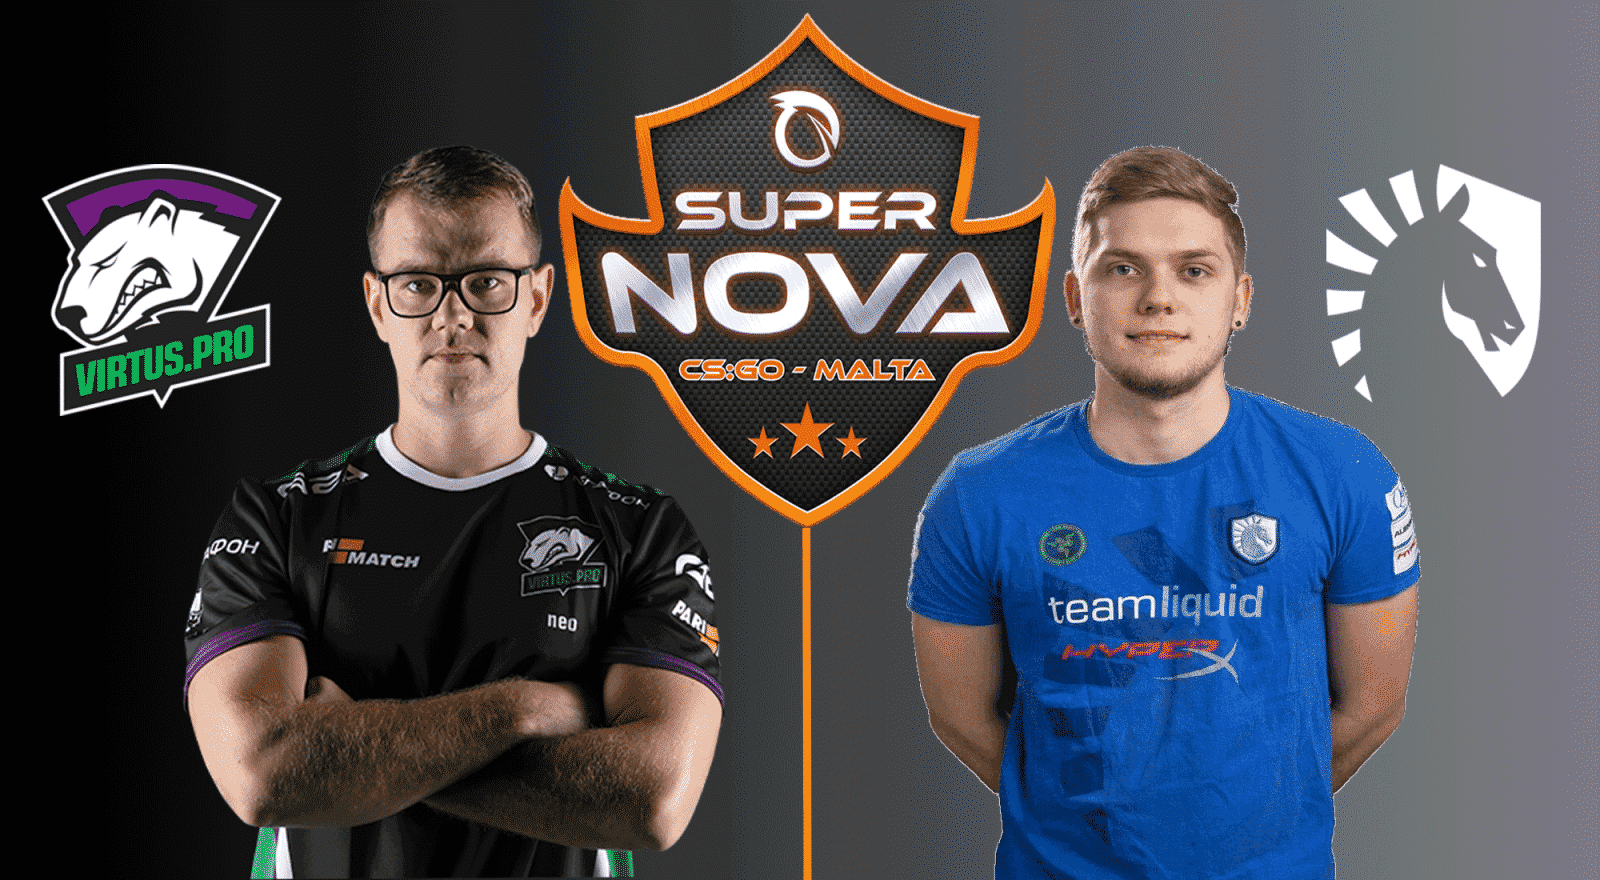 SuperNova Malta 2018 First Round Review Virtus.Pro vs Team Liquid Esports Pro Gaming